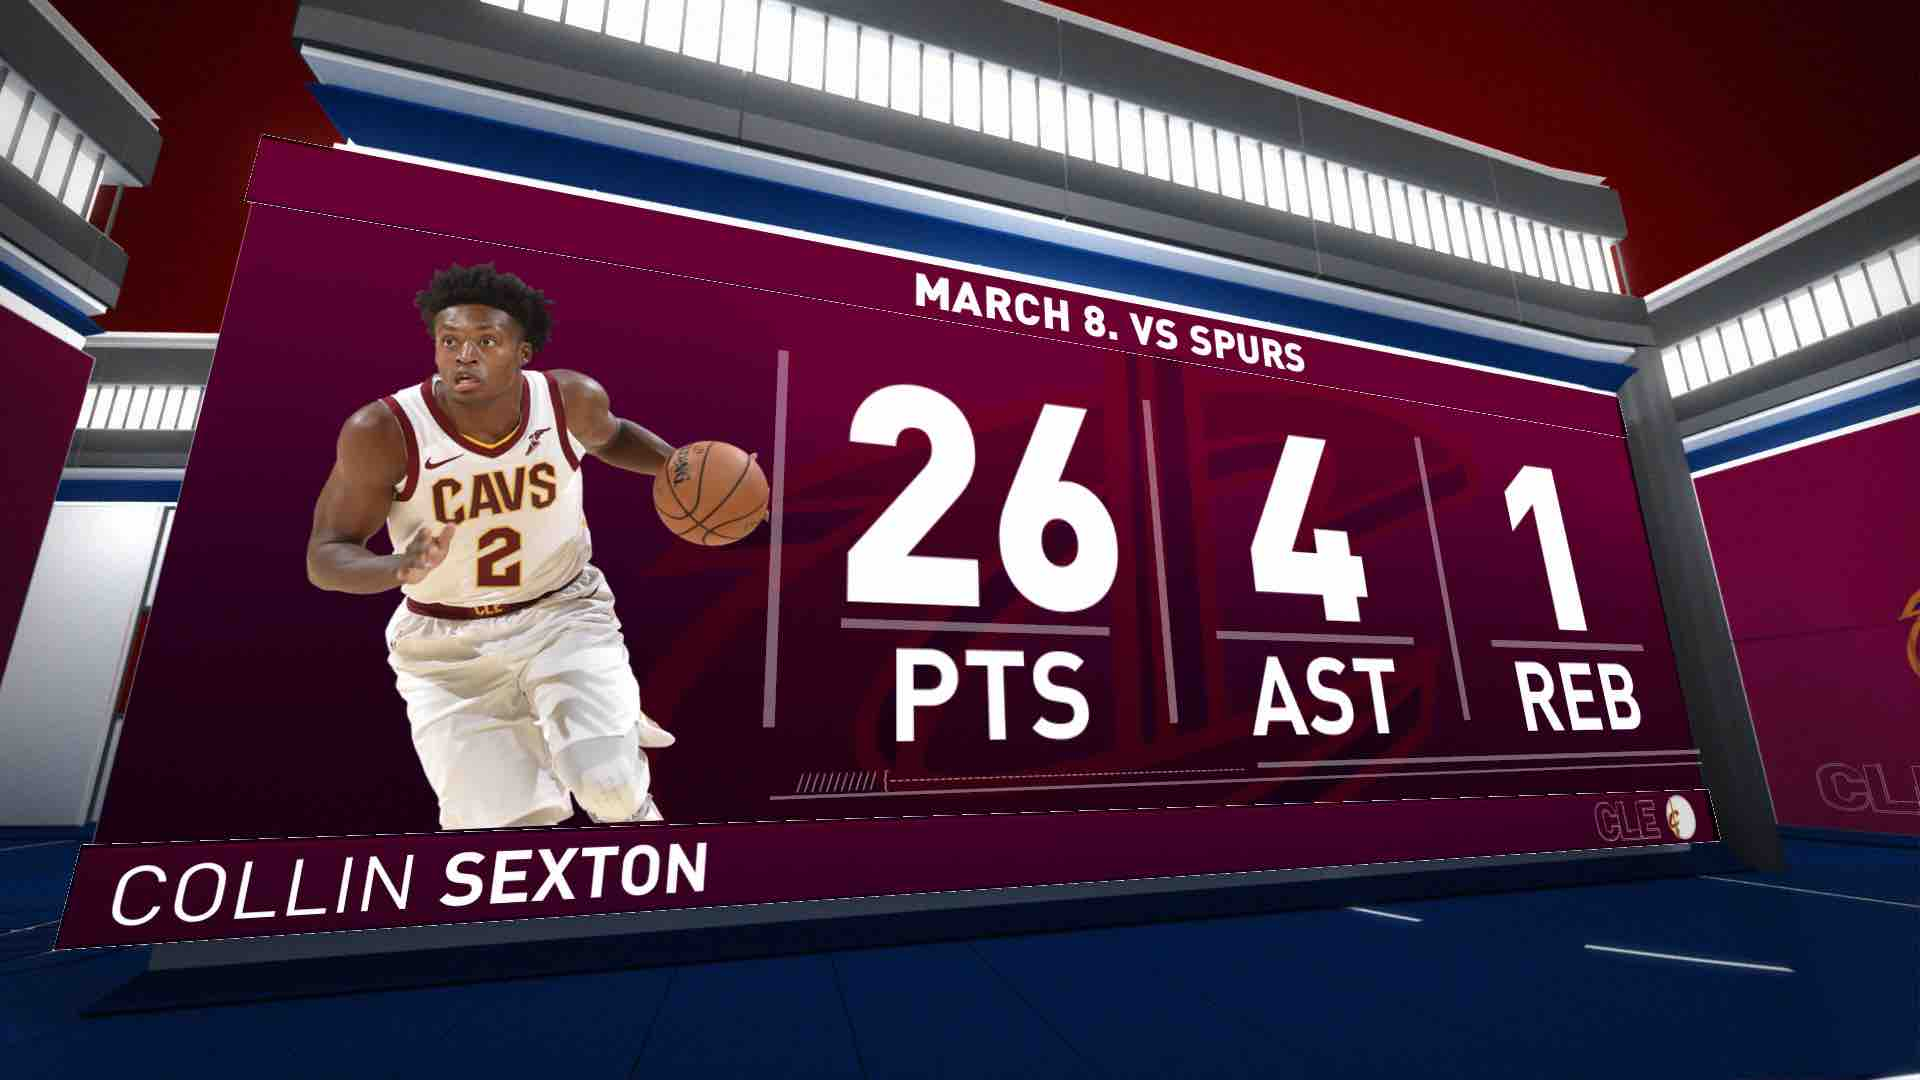 Highlights: Collin Sexton | Cavaliers vs. Spurs